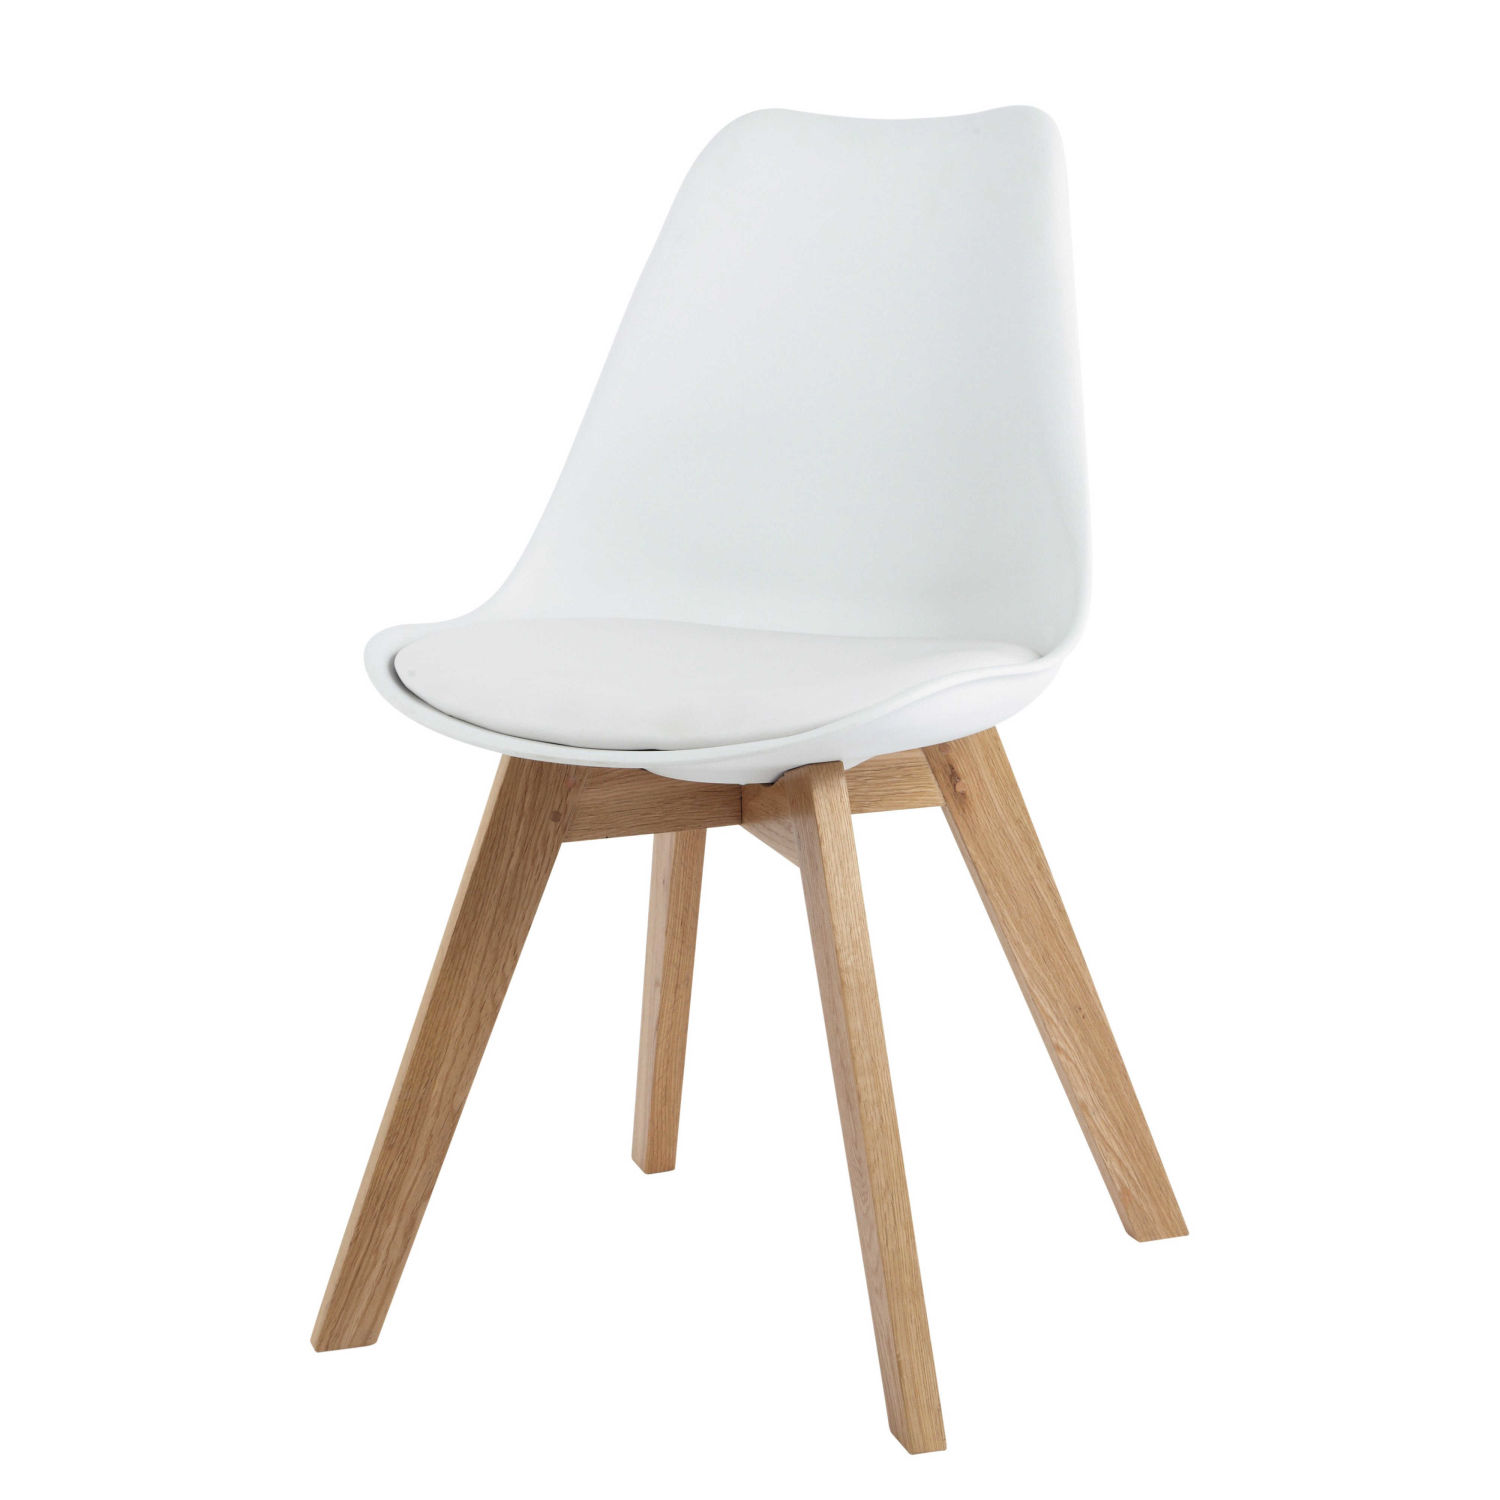 chaise style scandinave blanche et chne massif maisons du monde - Chaise Style Scandinave